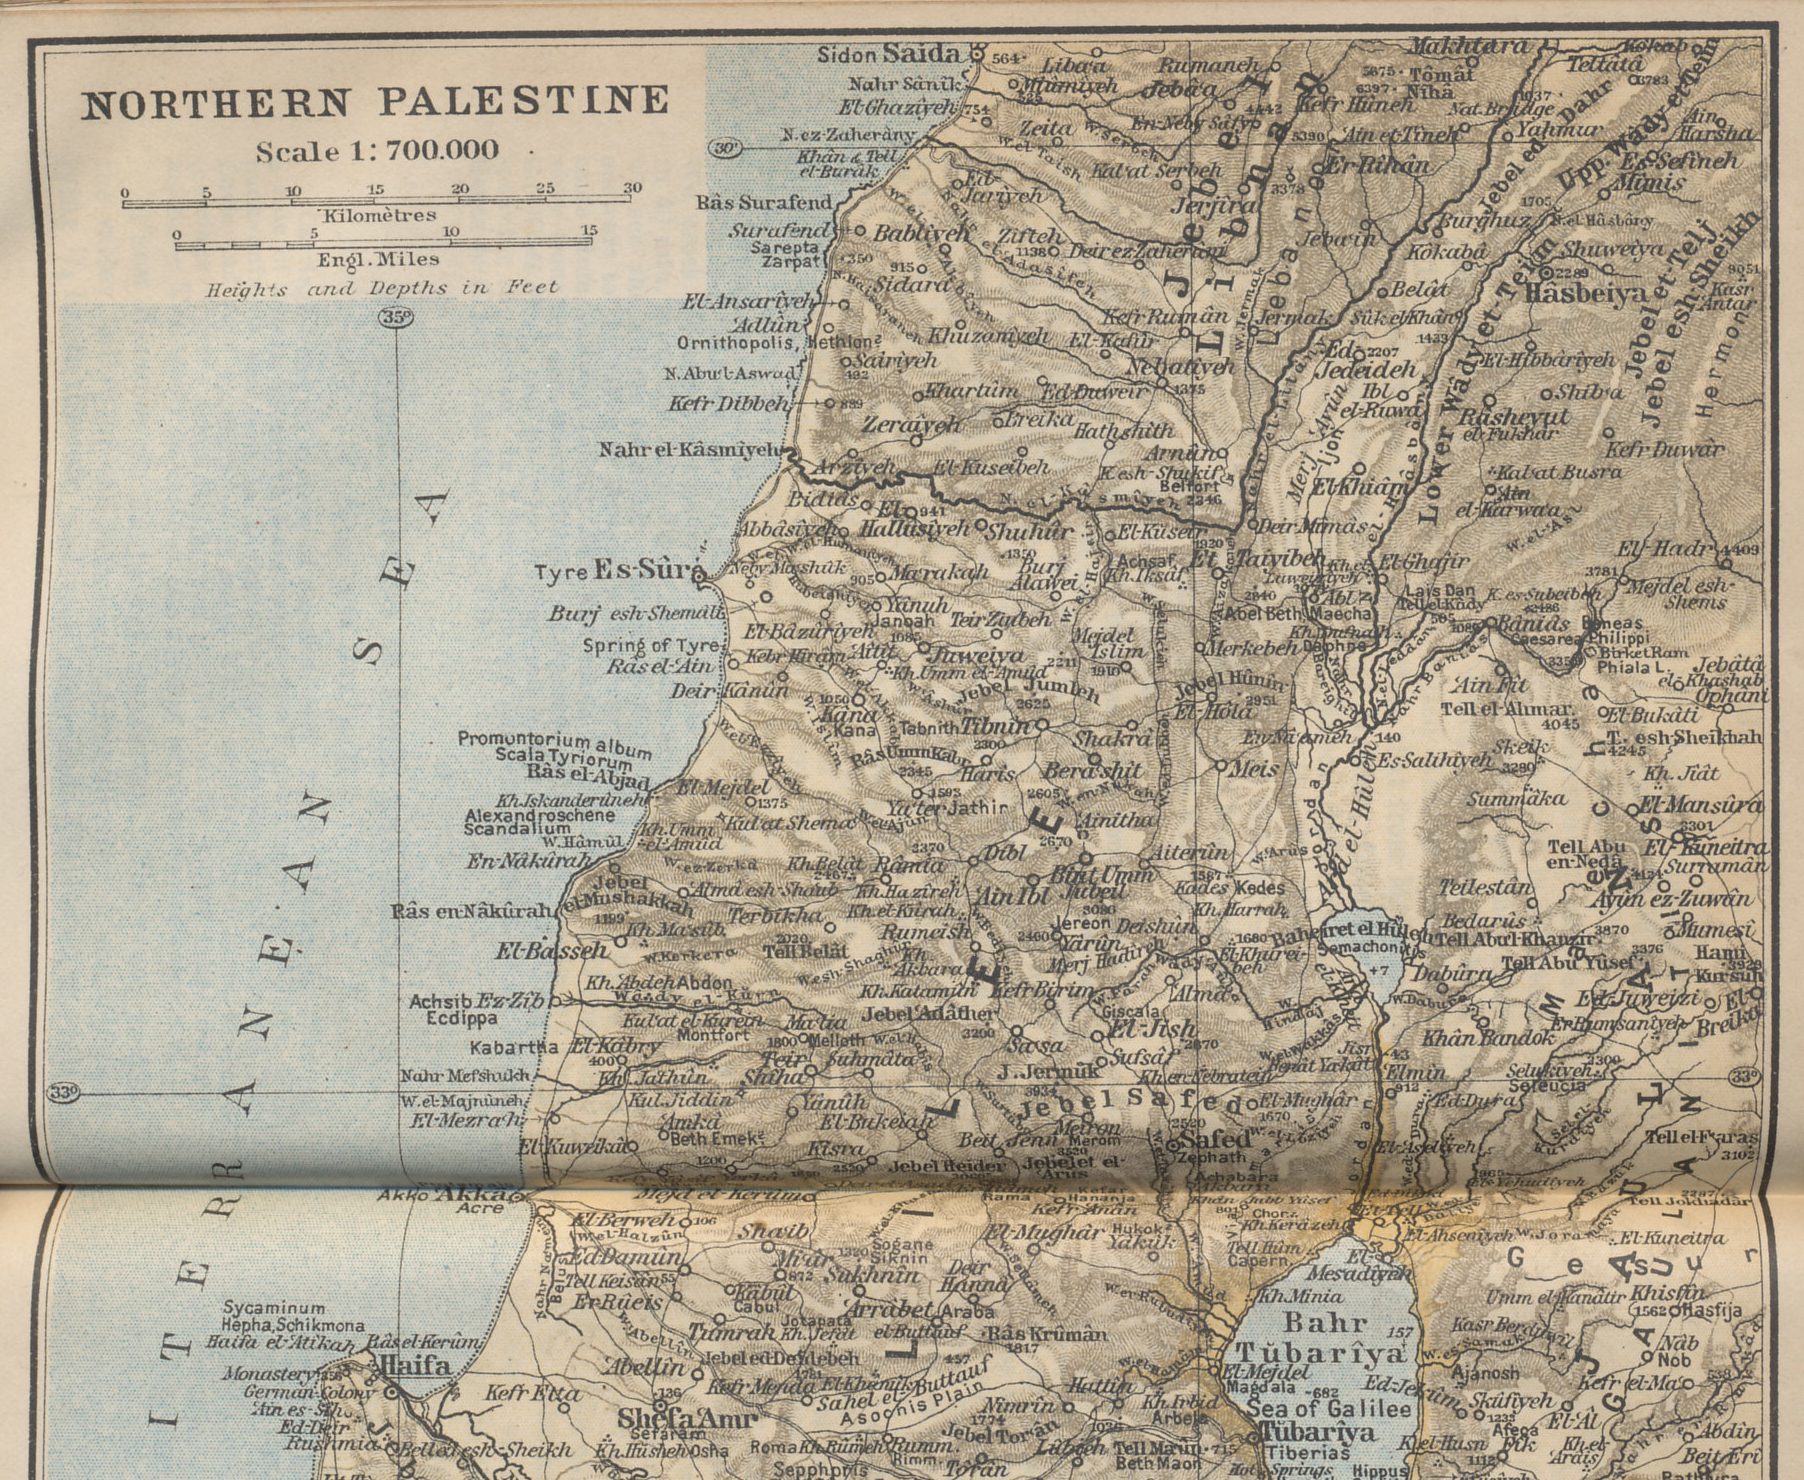 Northern Palestine (northern portion) from 'Palestine and Syria with Routes through Mesopotamia and Babylonia and with the Island of Cyprus' by Karl Baedeker